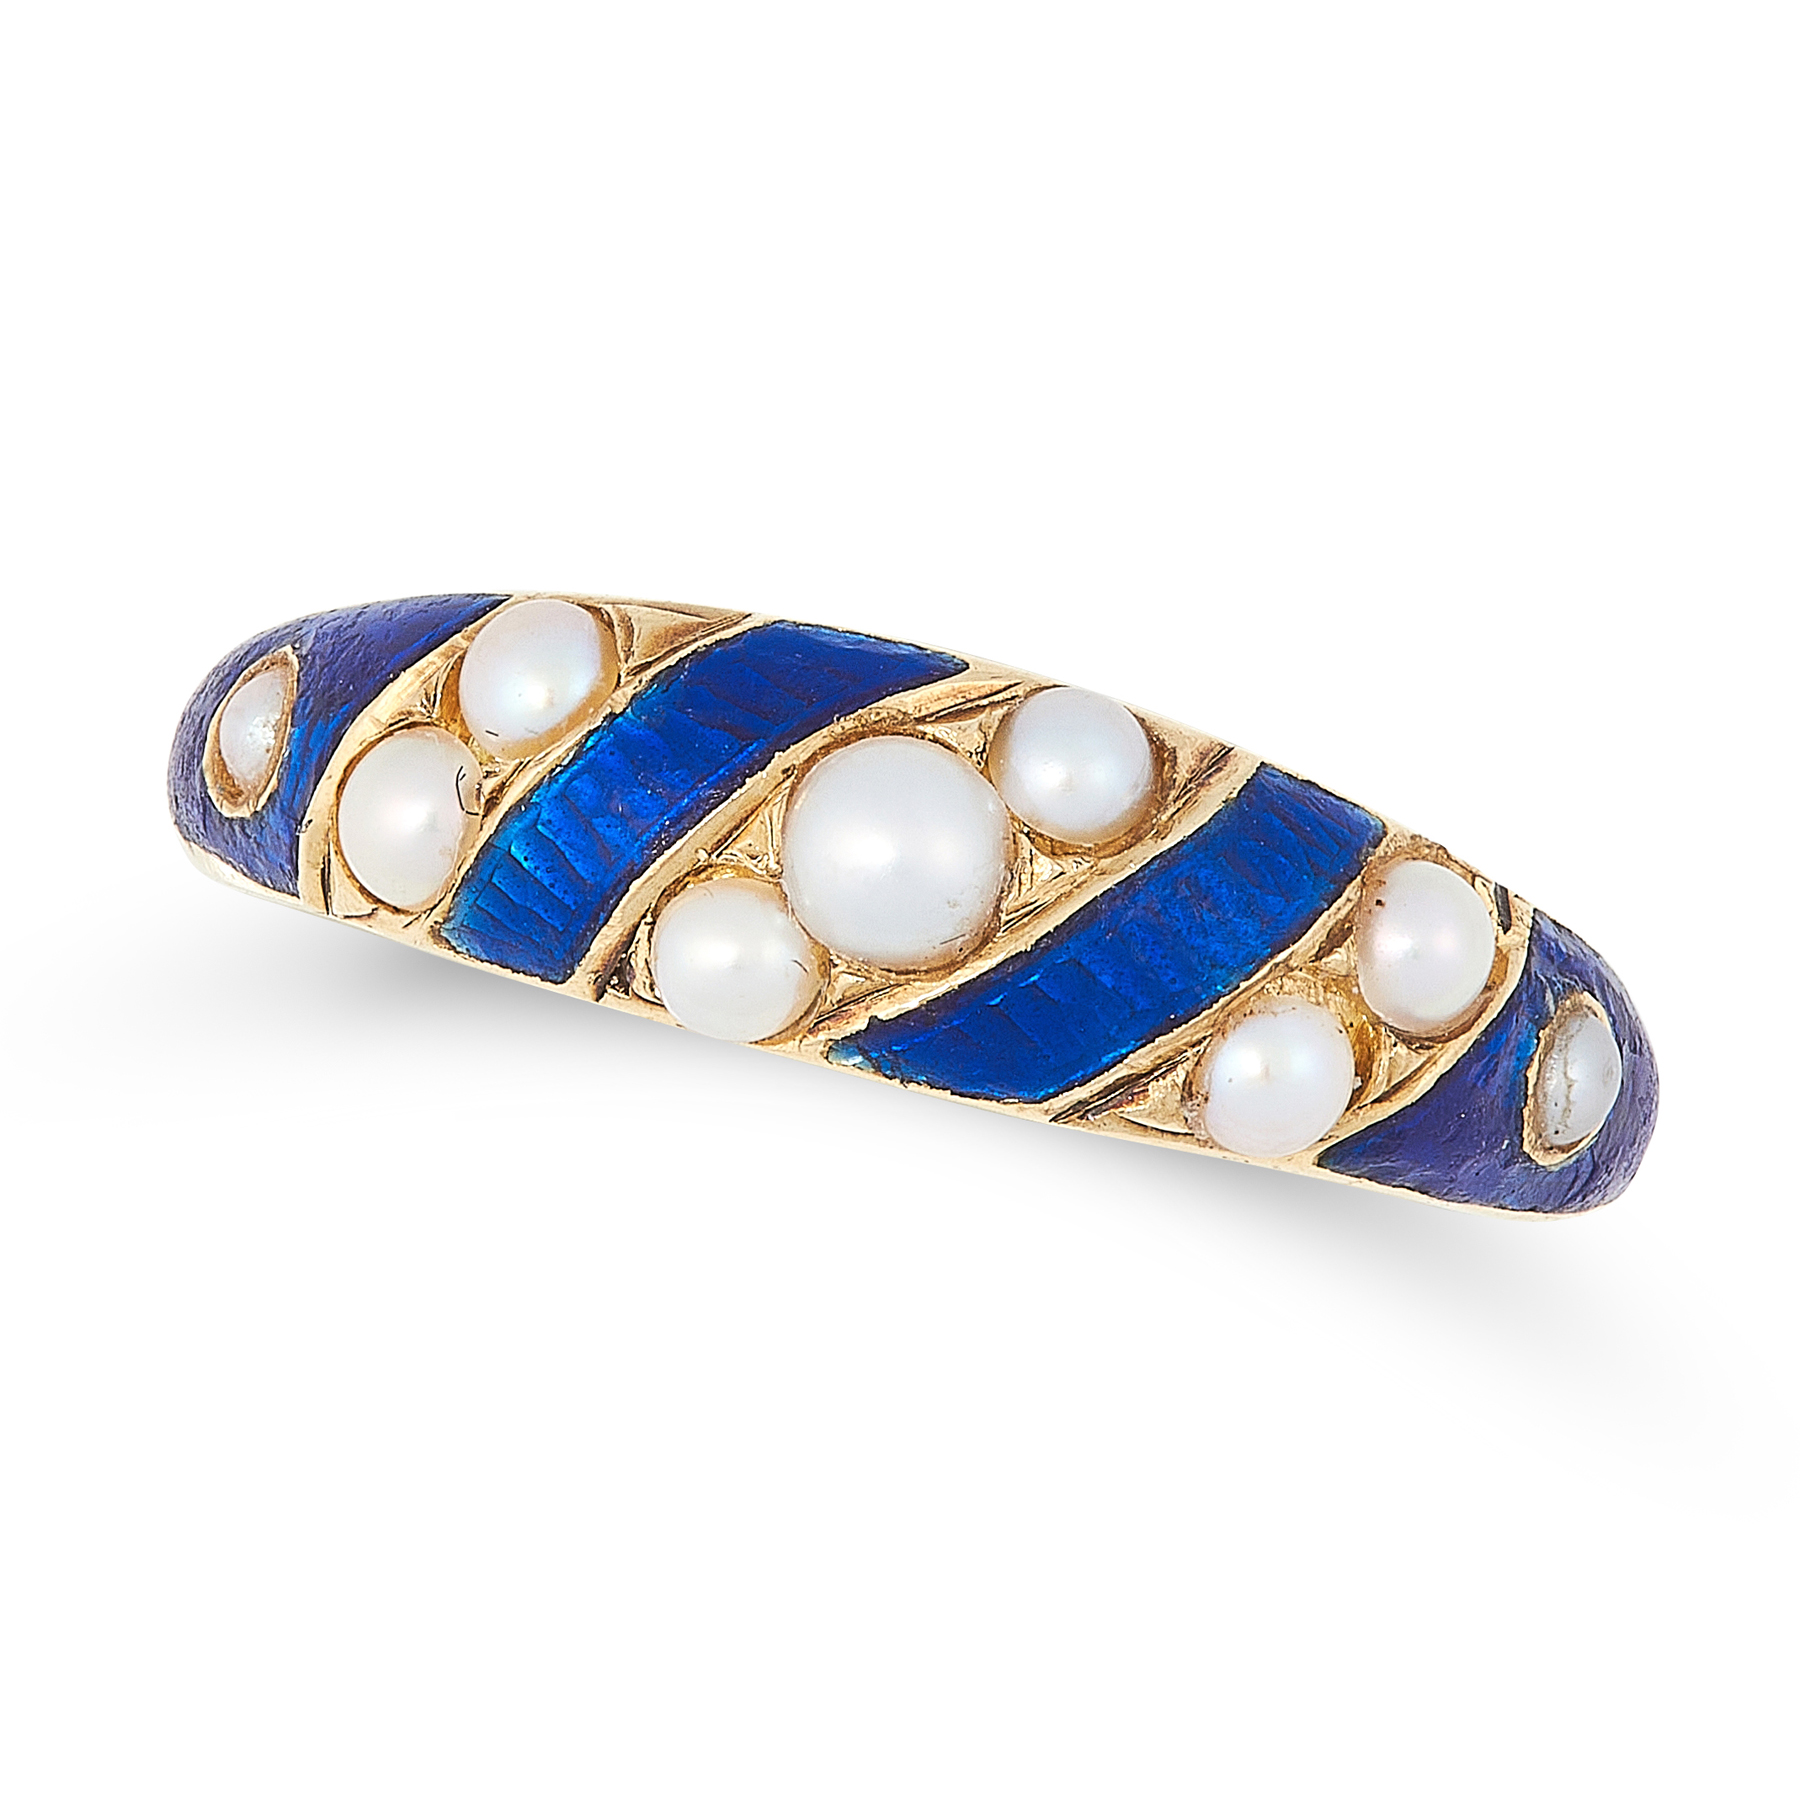 AN ANTIQUE VICTORIAN PEARL AND ENAMEL DRESS RING in high carat yellow gold, the graduated band set